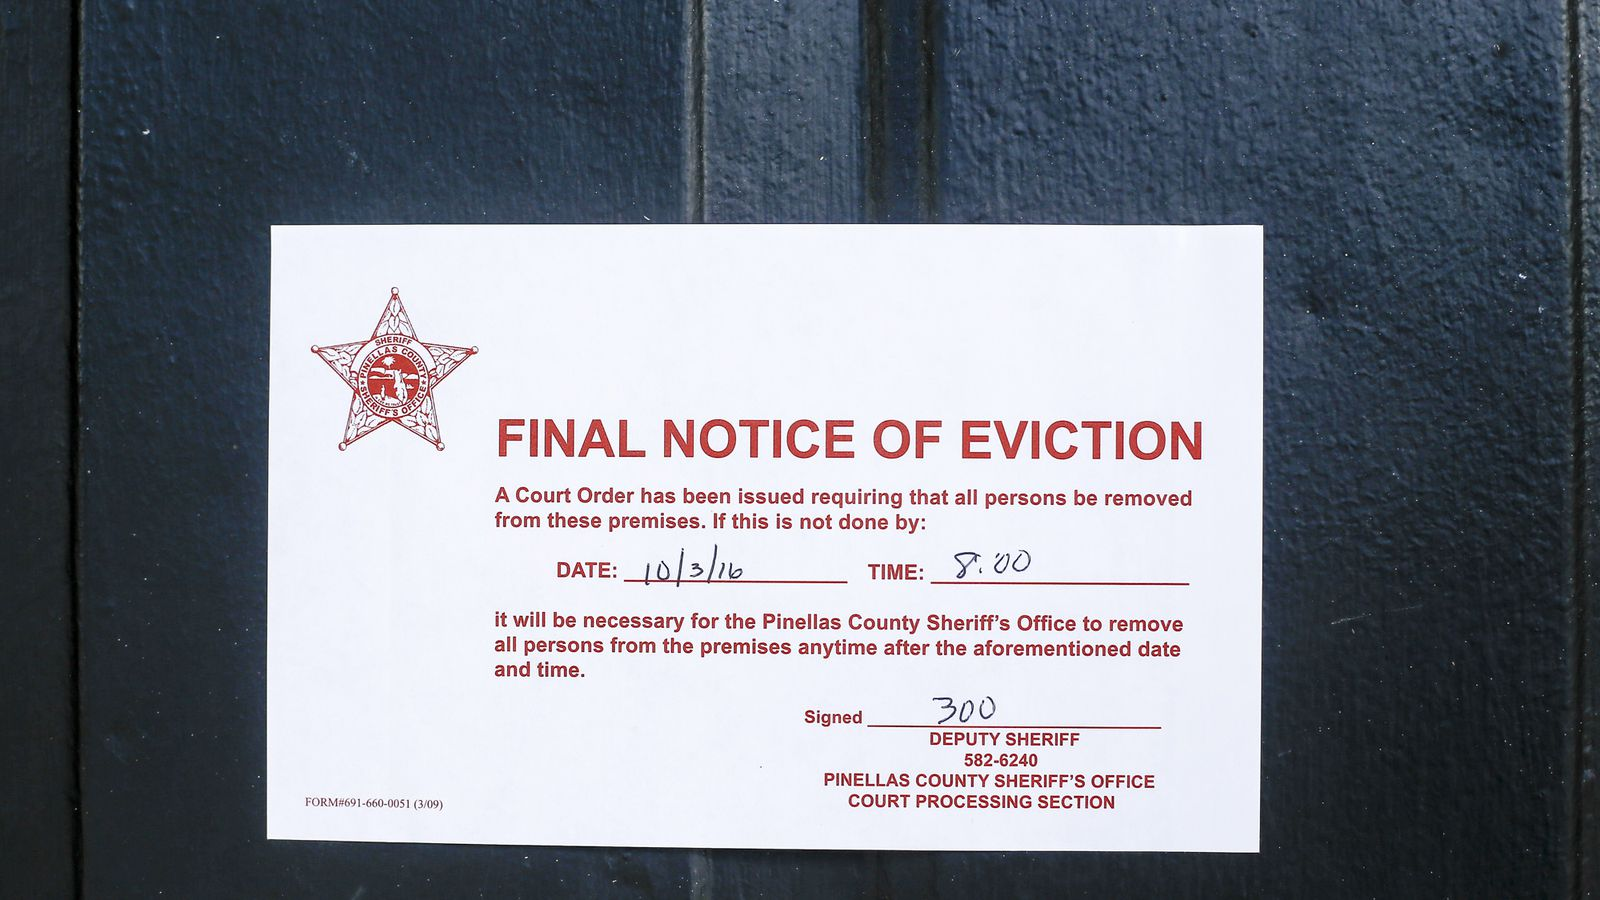 With eviction freeze extension, Florida landlords wonder how they'll recover lost rent